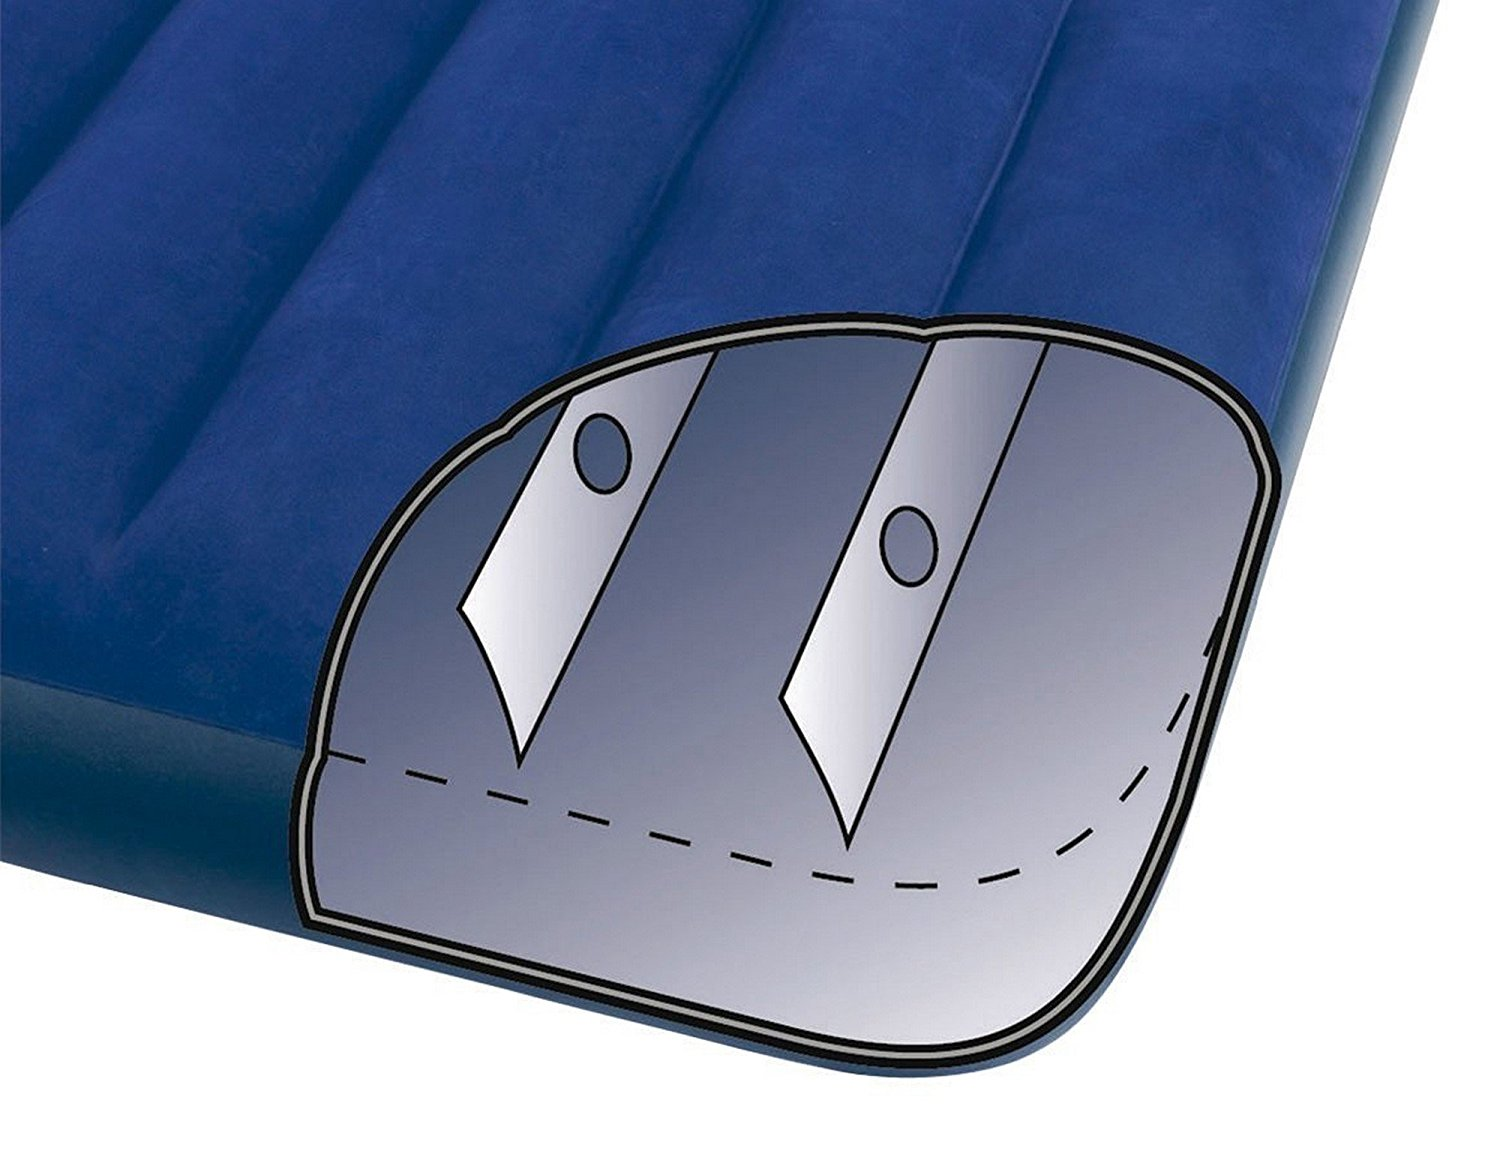 Intex Classic Downy Airbed Diagram